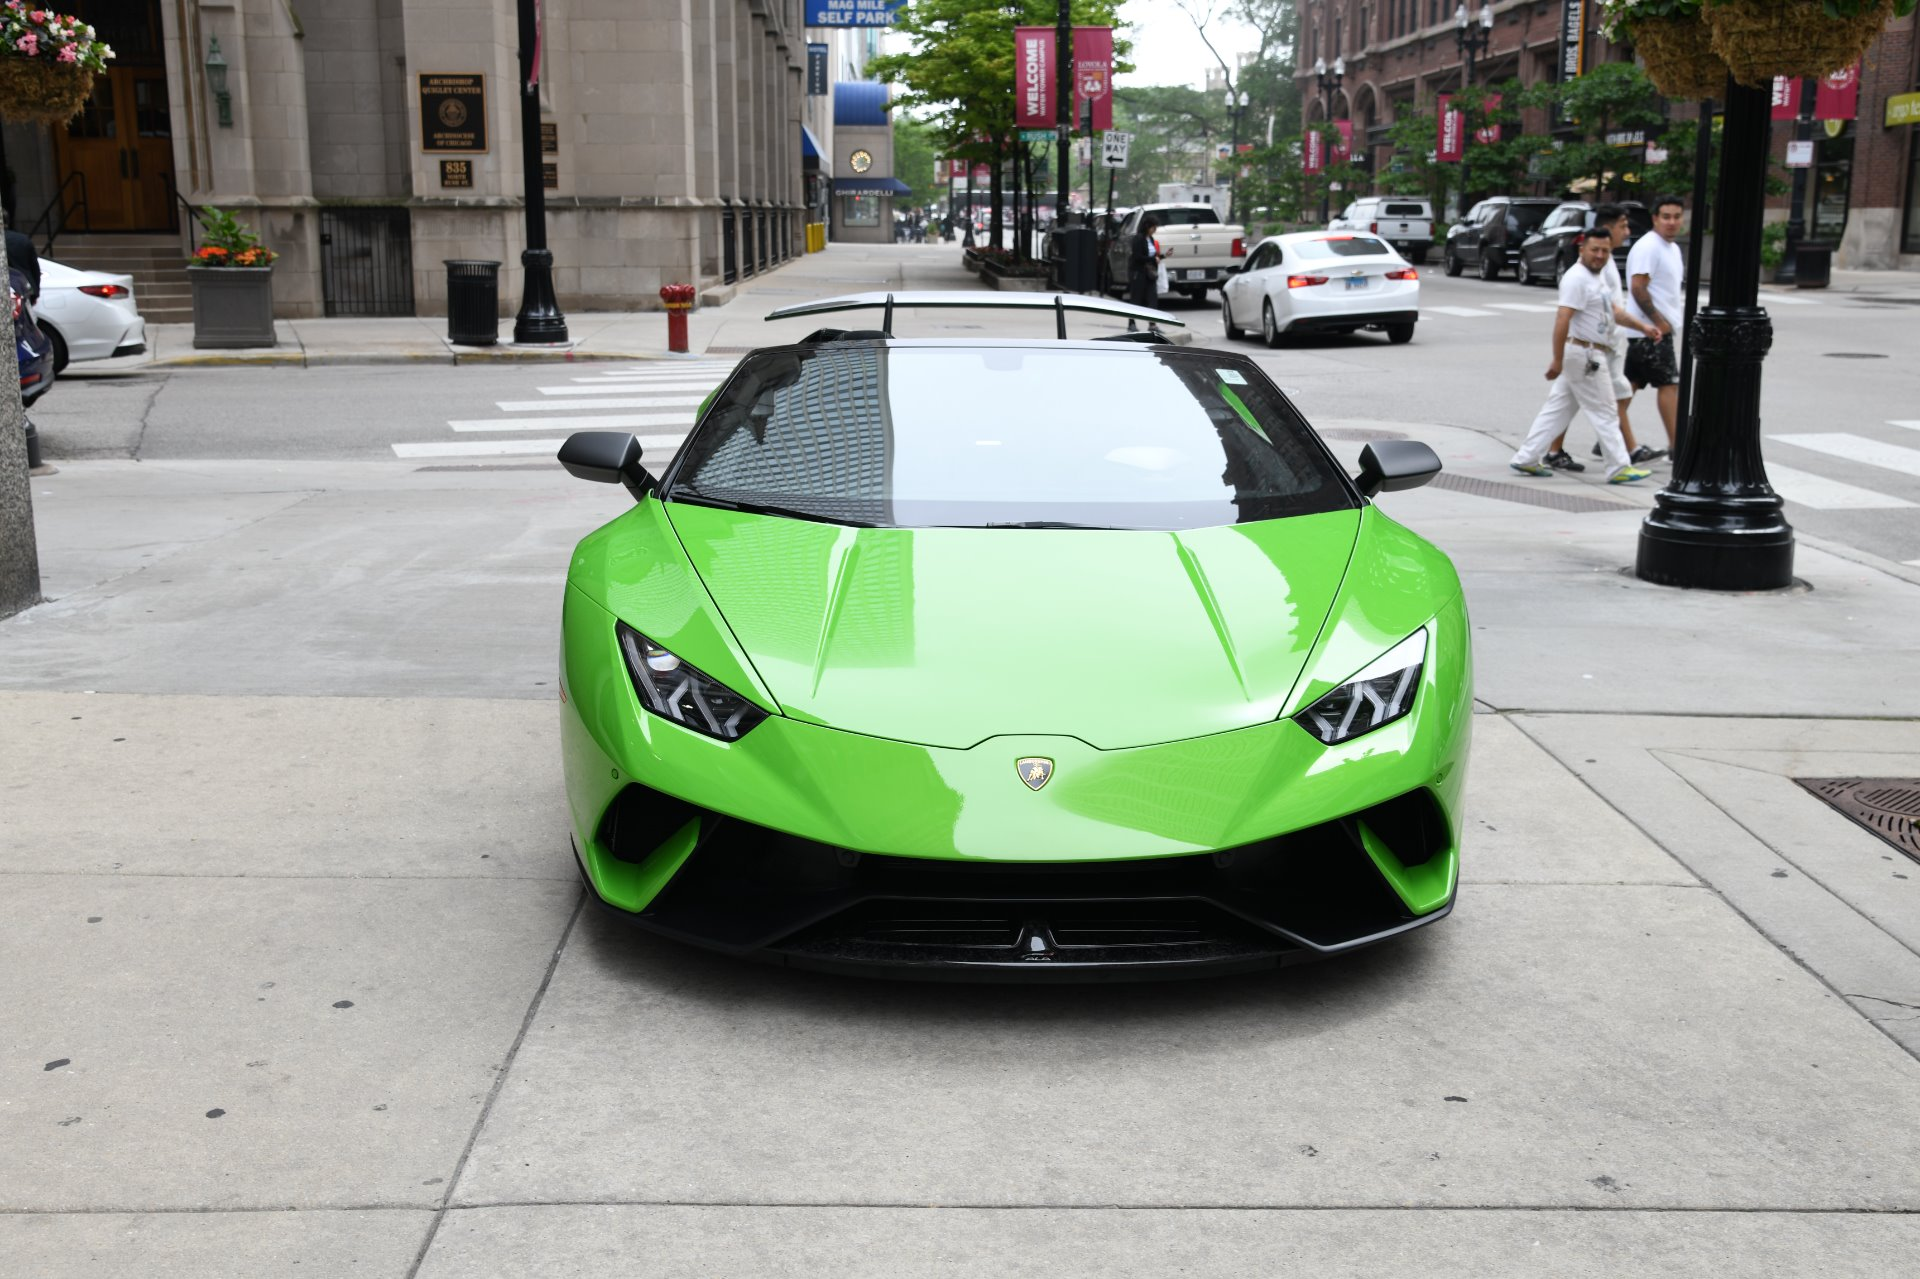 New 2019 Lamborghini Huracan Performante Spyder LP 640-4 Performante Spyder | Chicago, IL